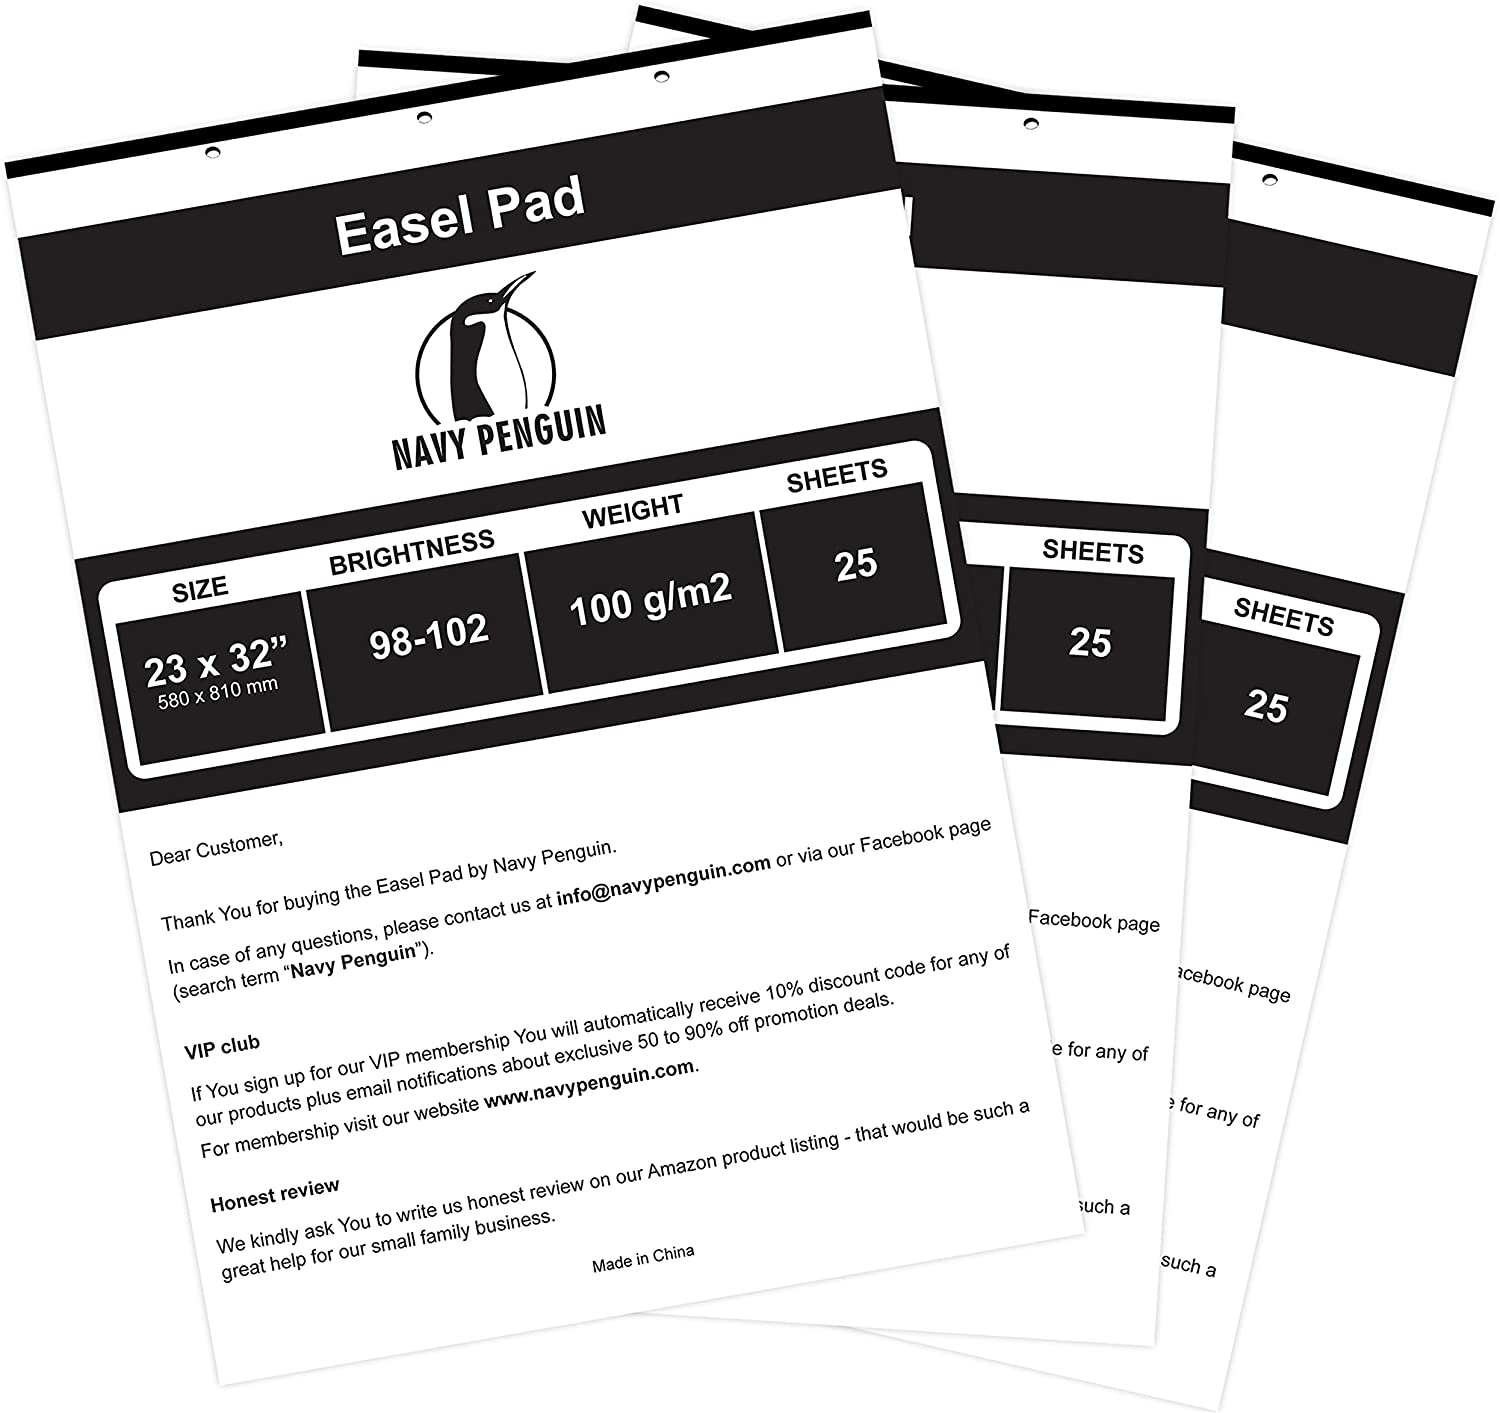 """Easel Pad 23x32"""" - 3 Pack (75 Sheets) - Flip Chart Paper, 25 Sheets/Pack, Plain White, Poster Flipchart 100 gsm - Large Drawing Pad for Teachers, Kids, Classroom, Office, Craft, Art, Presentation : Office Products"""